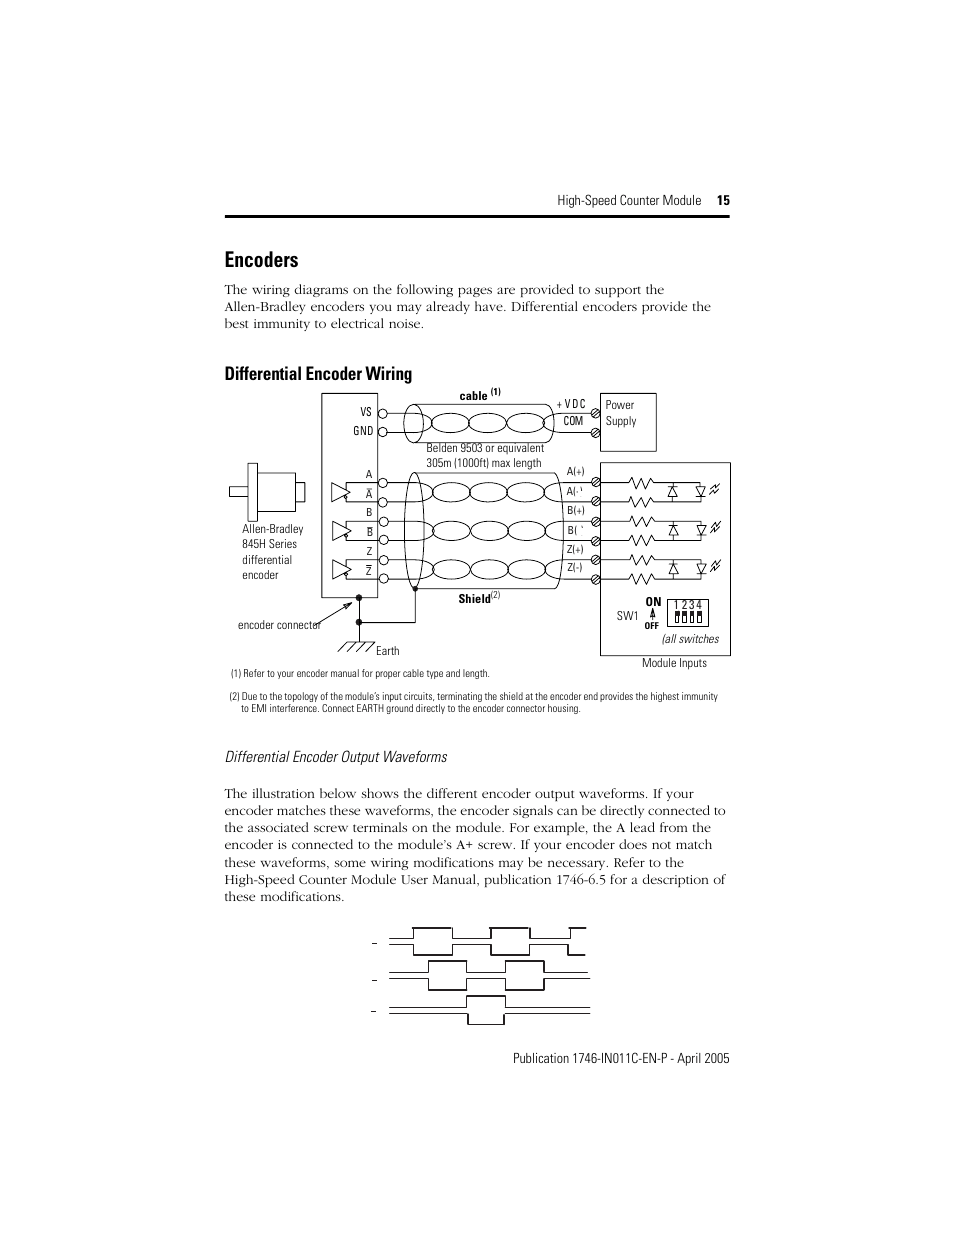 medium resolution of encoders differential encoder wiring rockwell automation 1746 hsce high speed counter module installation instructions user manual page 15 24